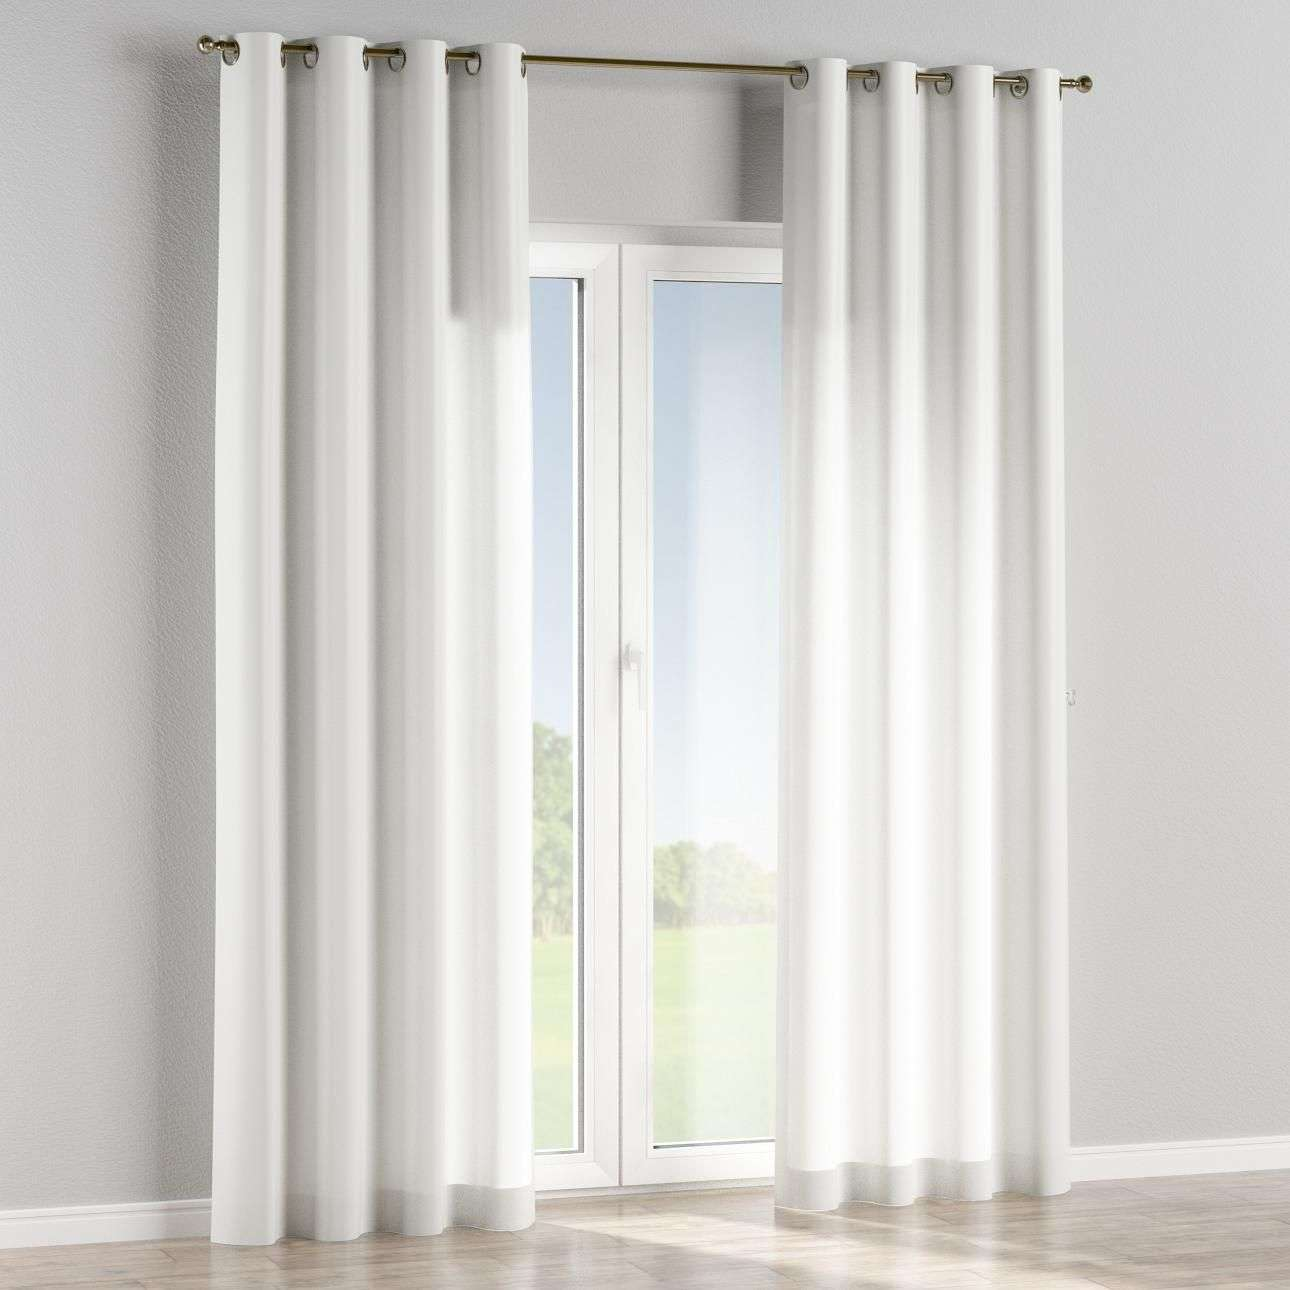 Eyelet lined curtains in collection Ashley, fabric: 137-43